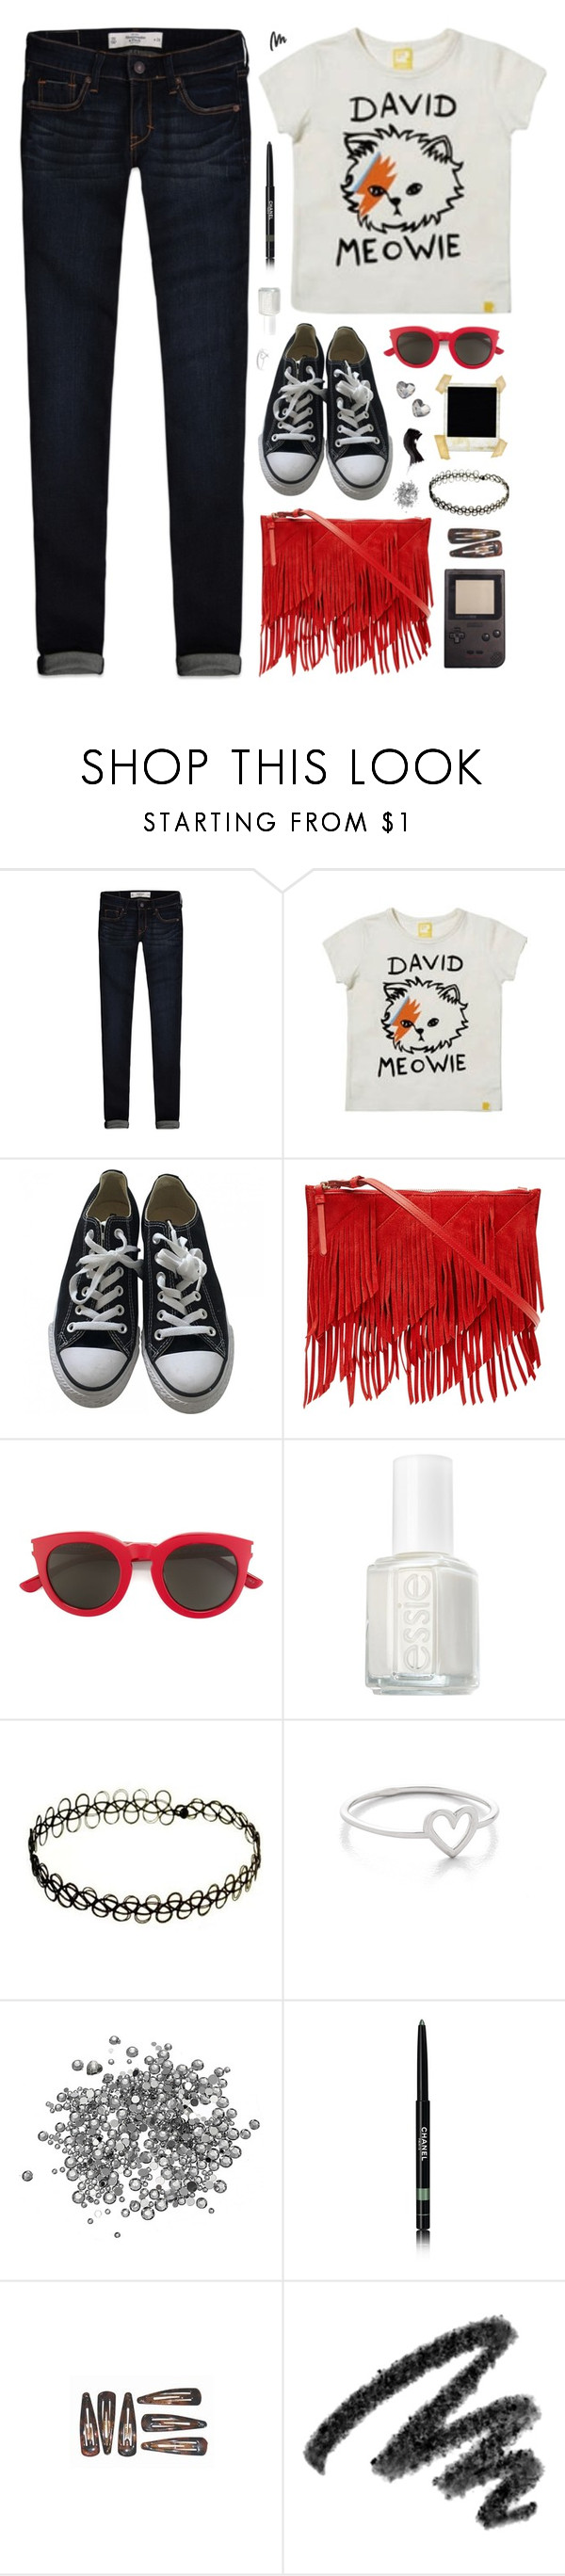 """""""Jean Genie"""" by charcharr ❤ liked on Polyvore featuring Abercrombie & Fitch, Converse, Reiss, Yves Saint Laurent, Essie, Polaroid, Chanel and LARA"""